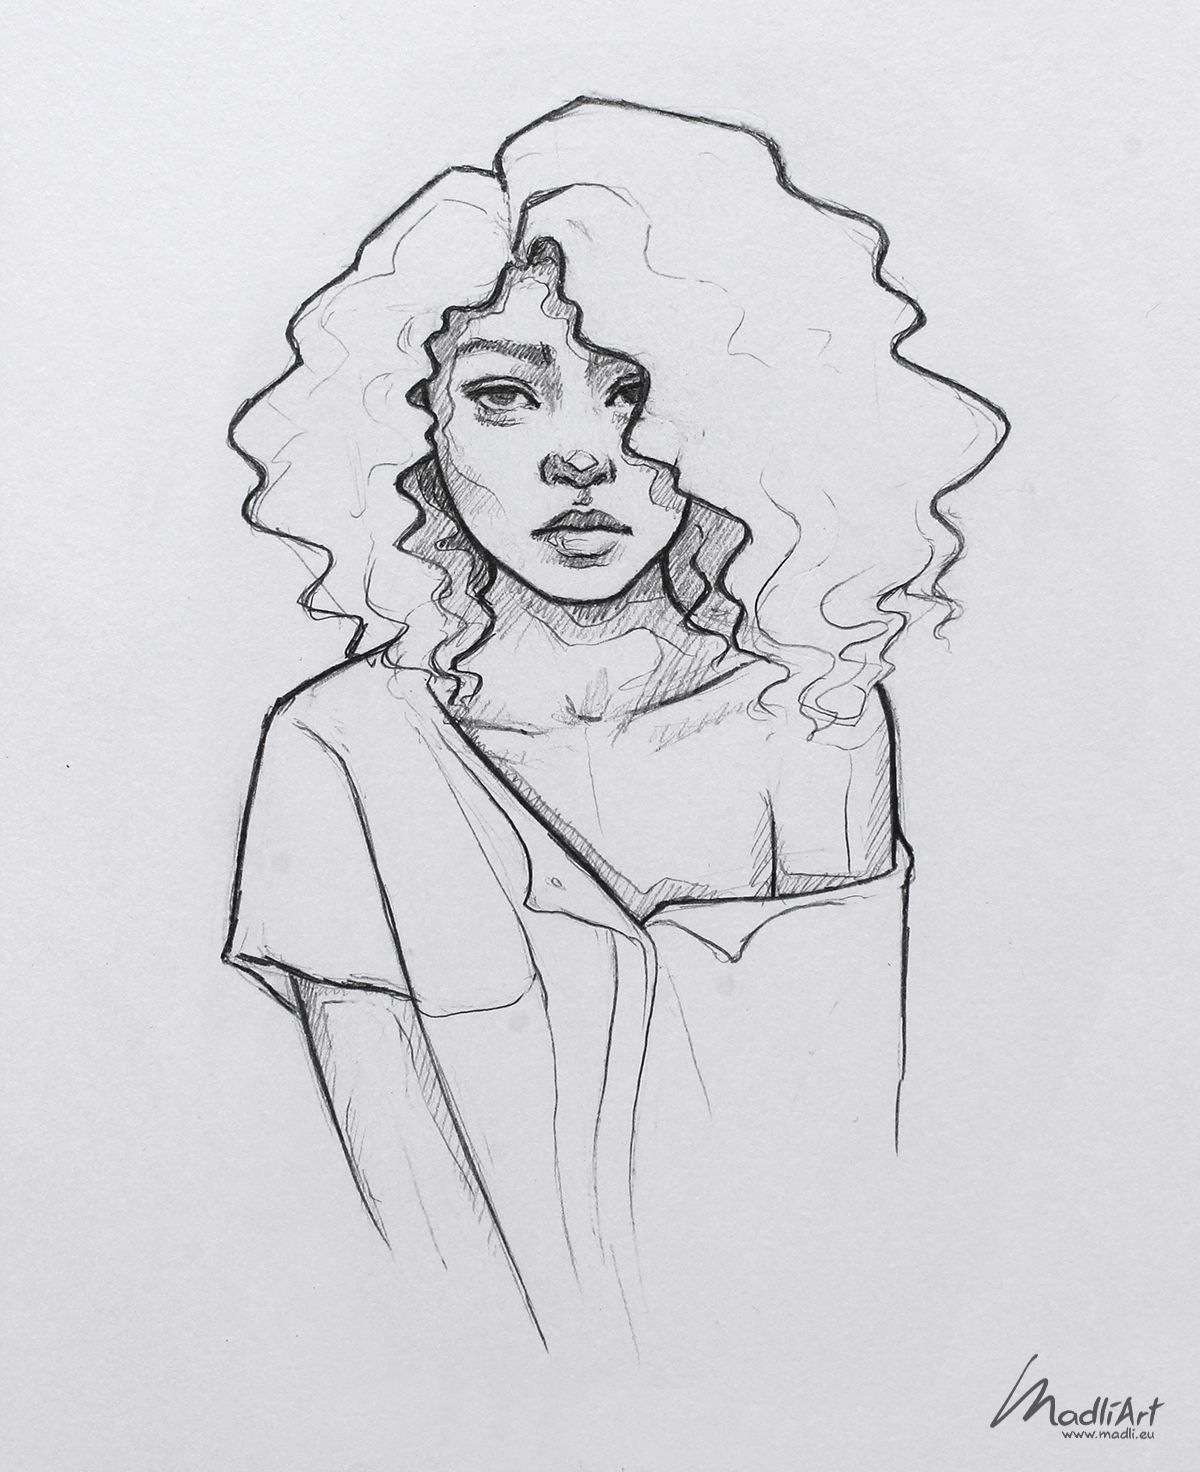 How To Draw A Black Girl Step By Step : black, Pretty, MadliArt, Drawing, Sketches,, Portrait, Sketches